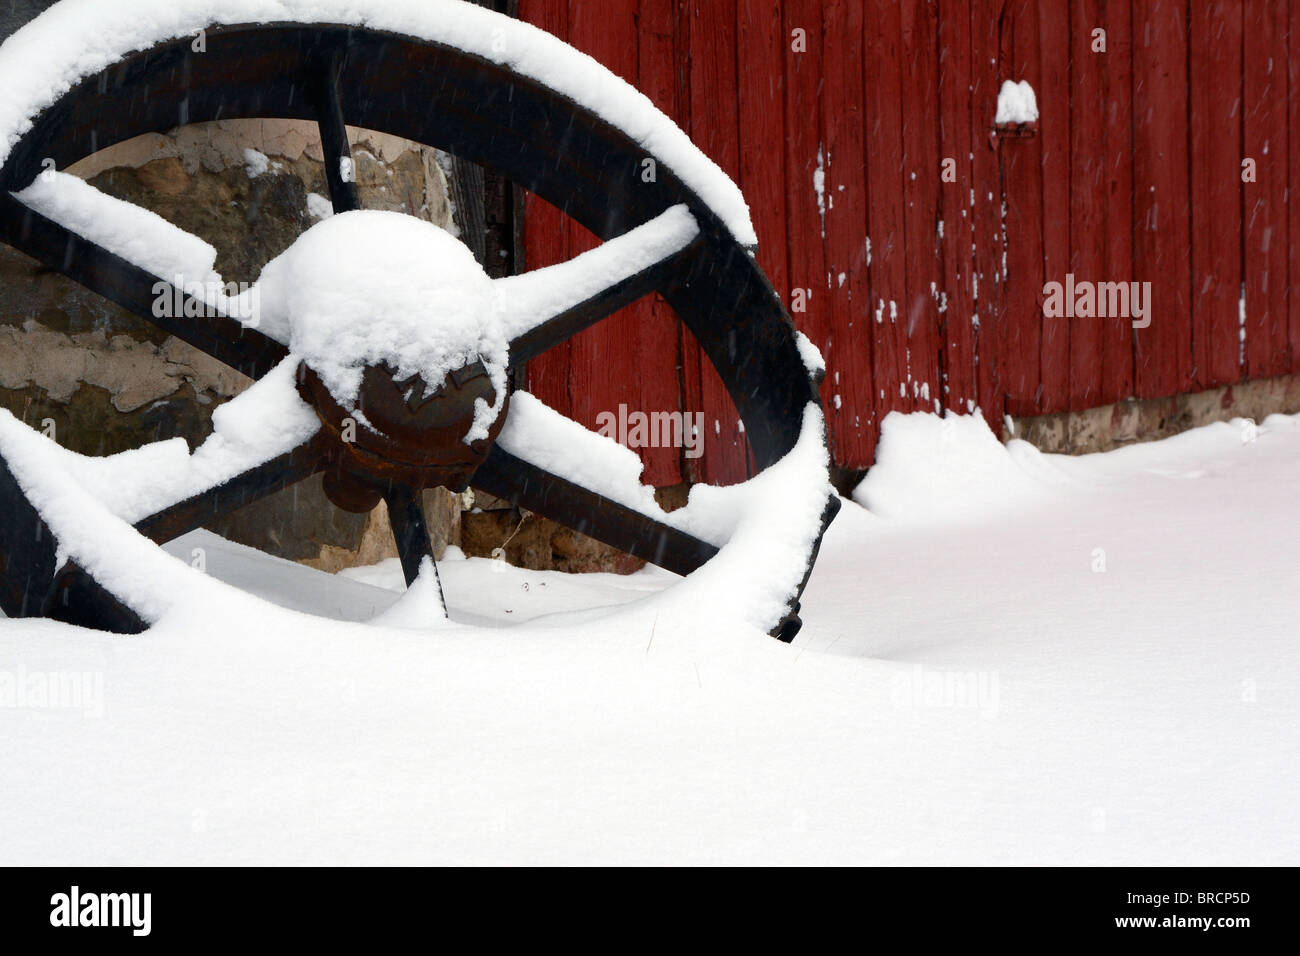 Old Tractor Wheel on Wisconsin Farm in Snow - Stock Image